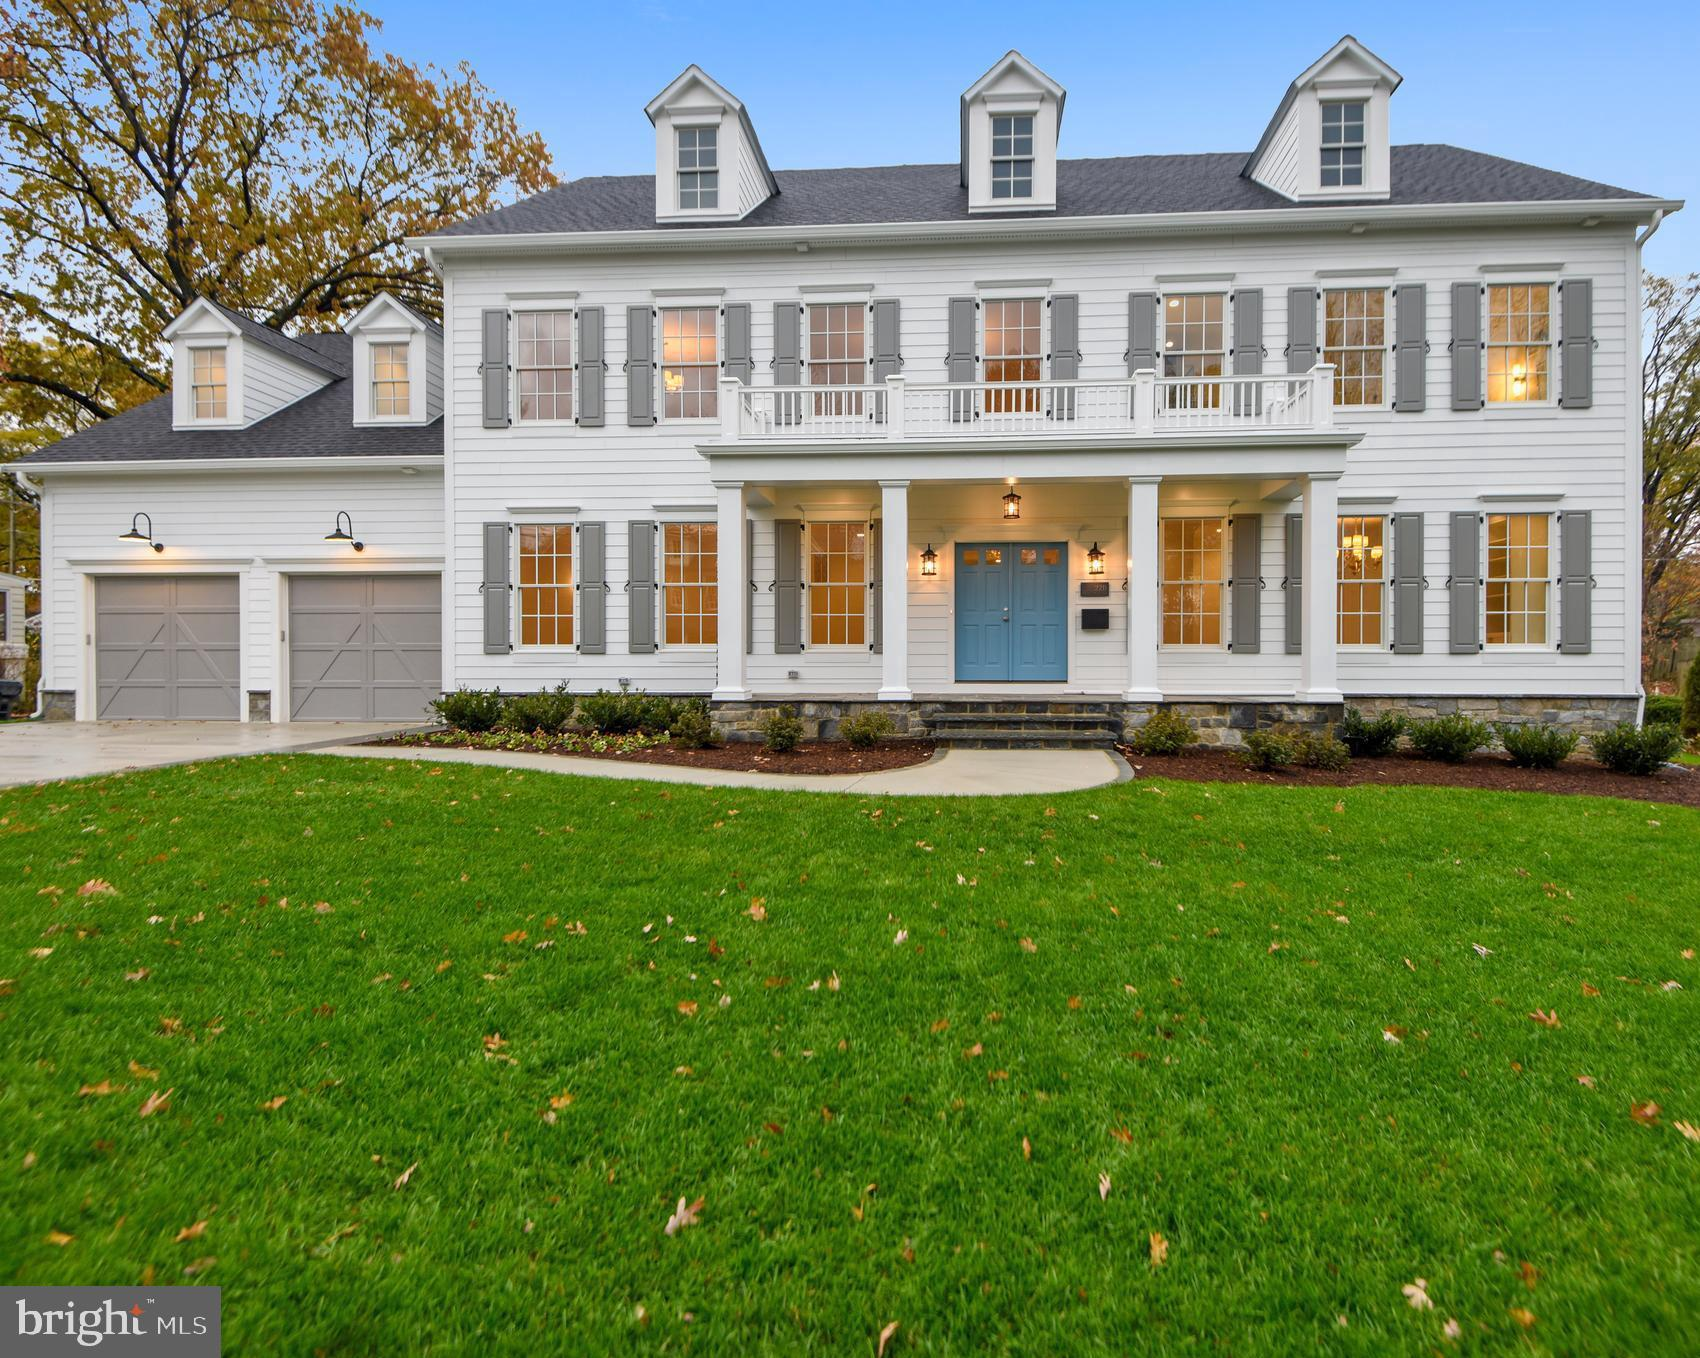 2211 WINDSOR ROAD, ALEXANDRIA, VA 22307